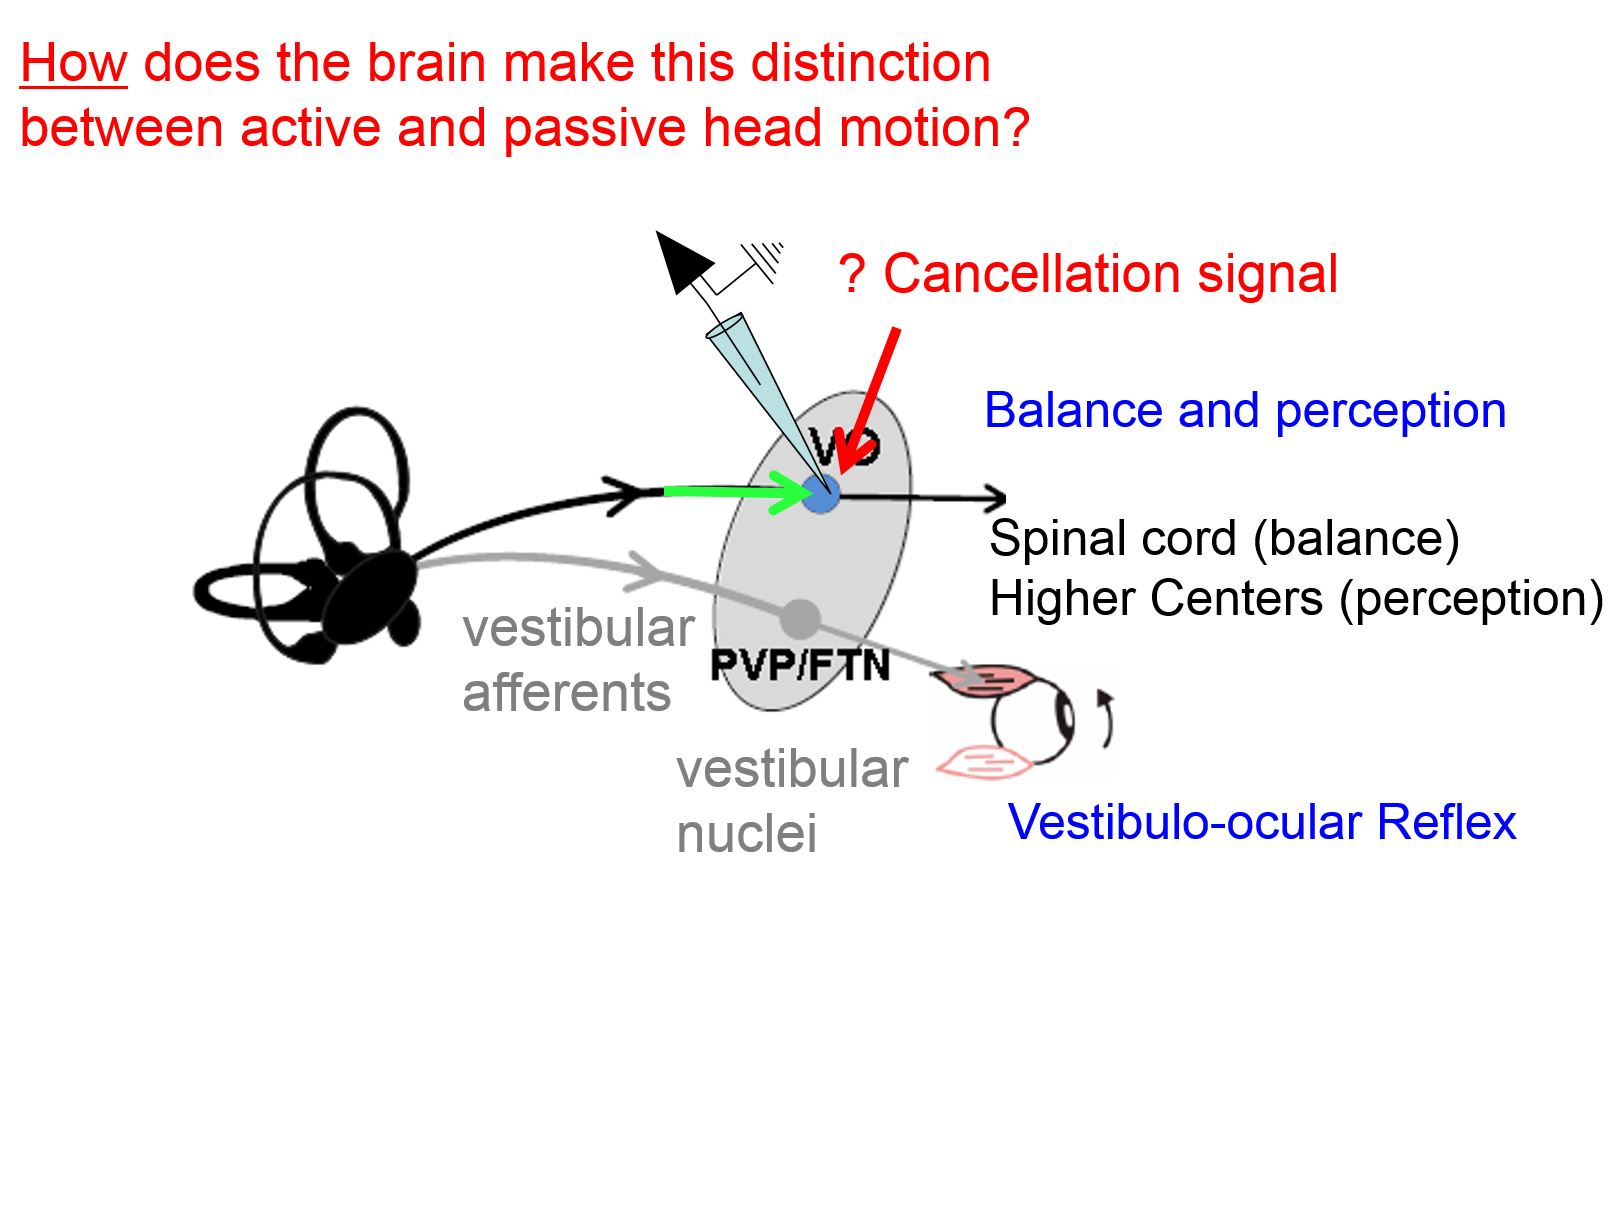 How does the brain make this distinction between active and passive head motion?